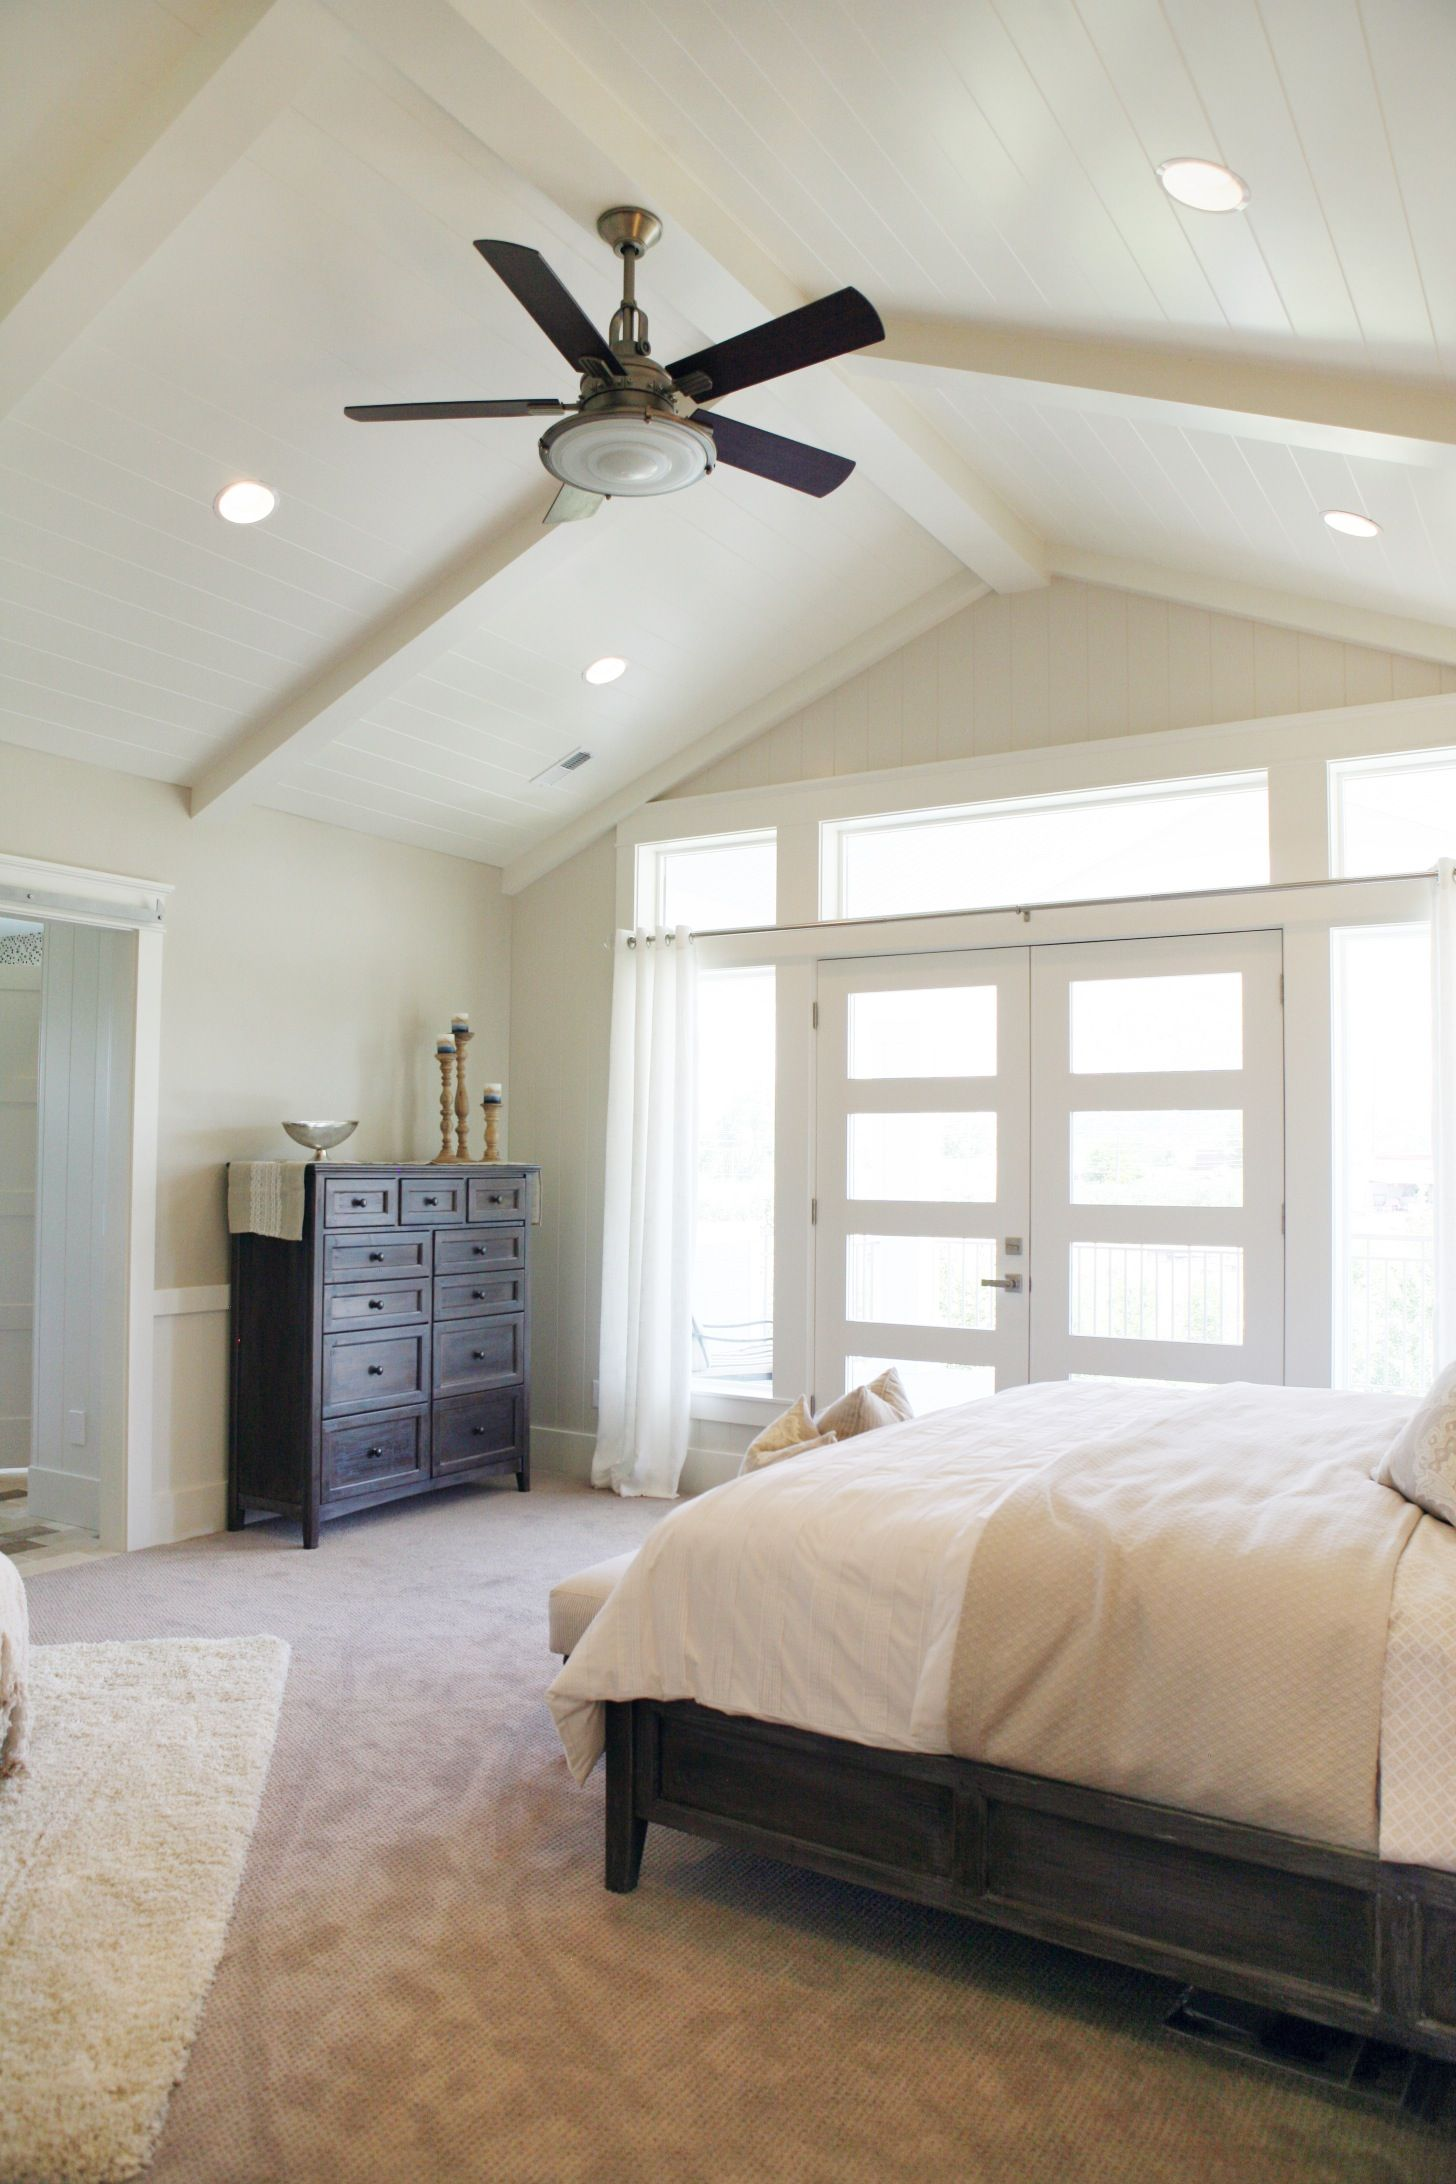 Master Bedroom High Ceiling Bright Windows And A Fan Space Pinterest Ceiling Vaulting